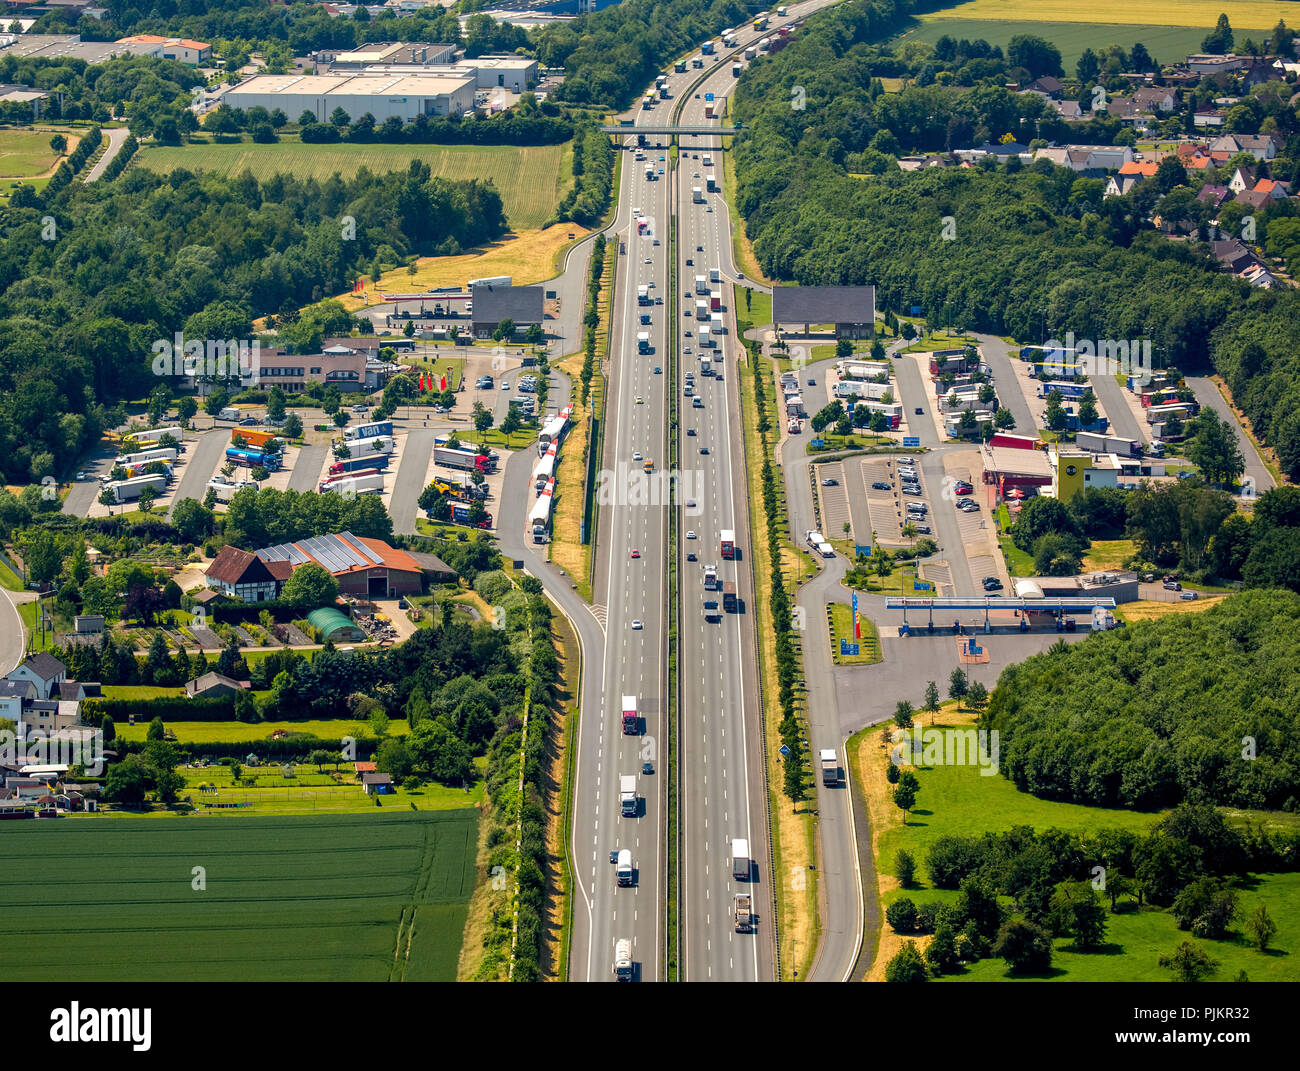 Motorway A2, motorway service area Rhynern, truck parking lots, breaks, driving times, Hamm, Ruhr area, North Rhine-Westphalia, Germany - Stock Image